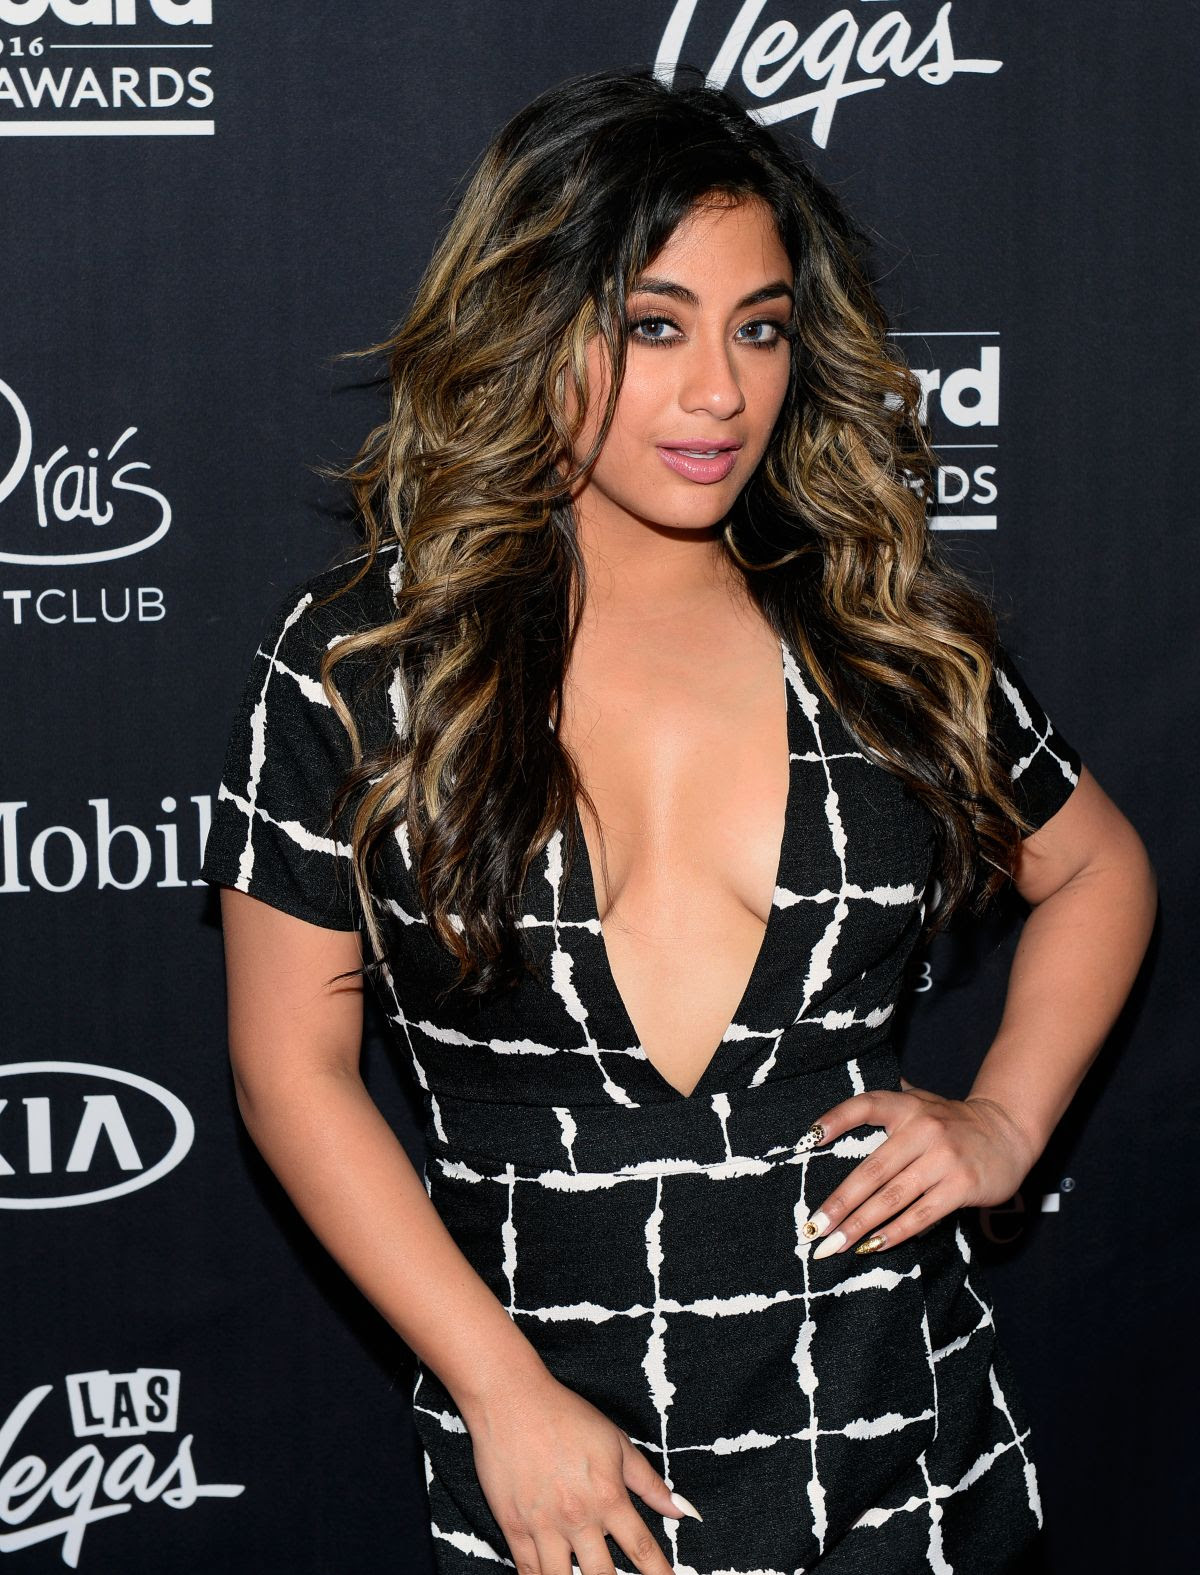 ALLY BROOKE at 2016 Billboard Music Awards After-party 05/22/2016